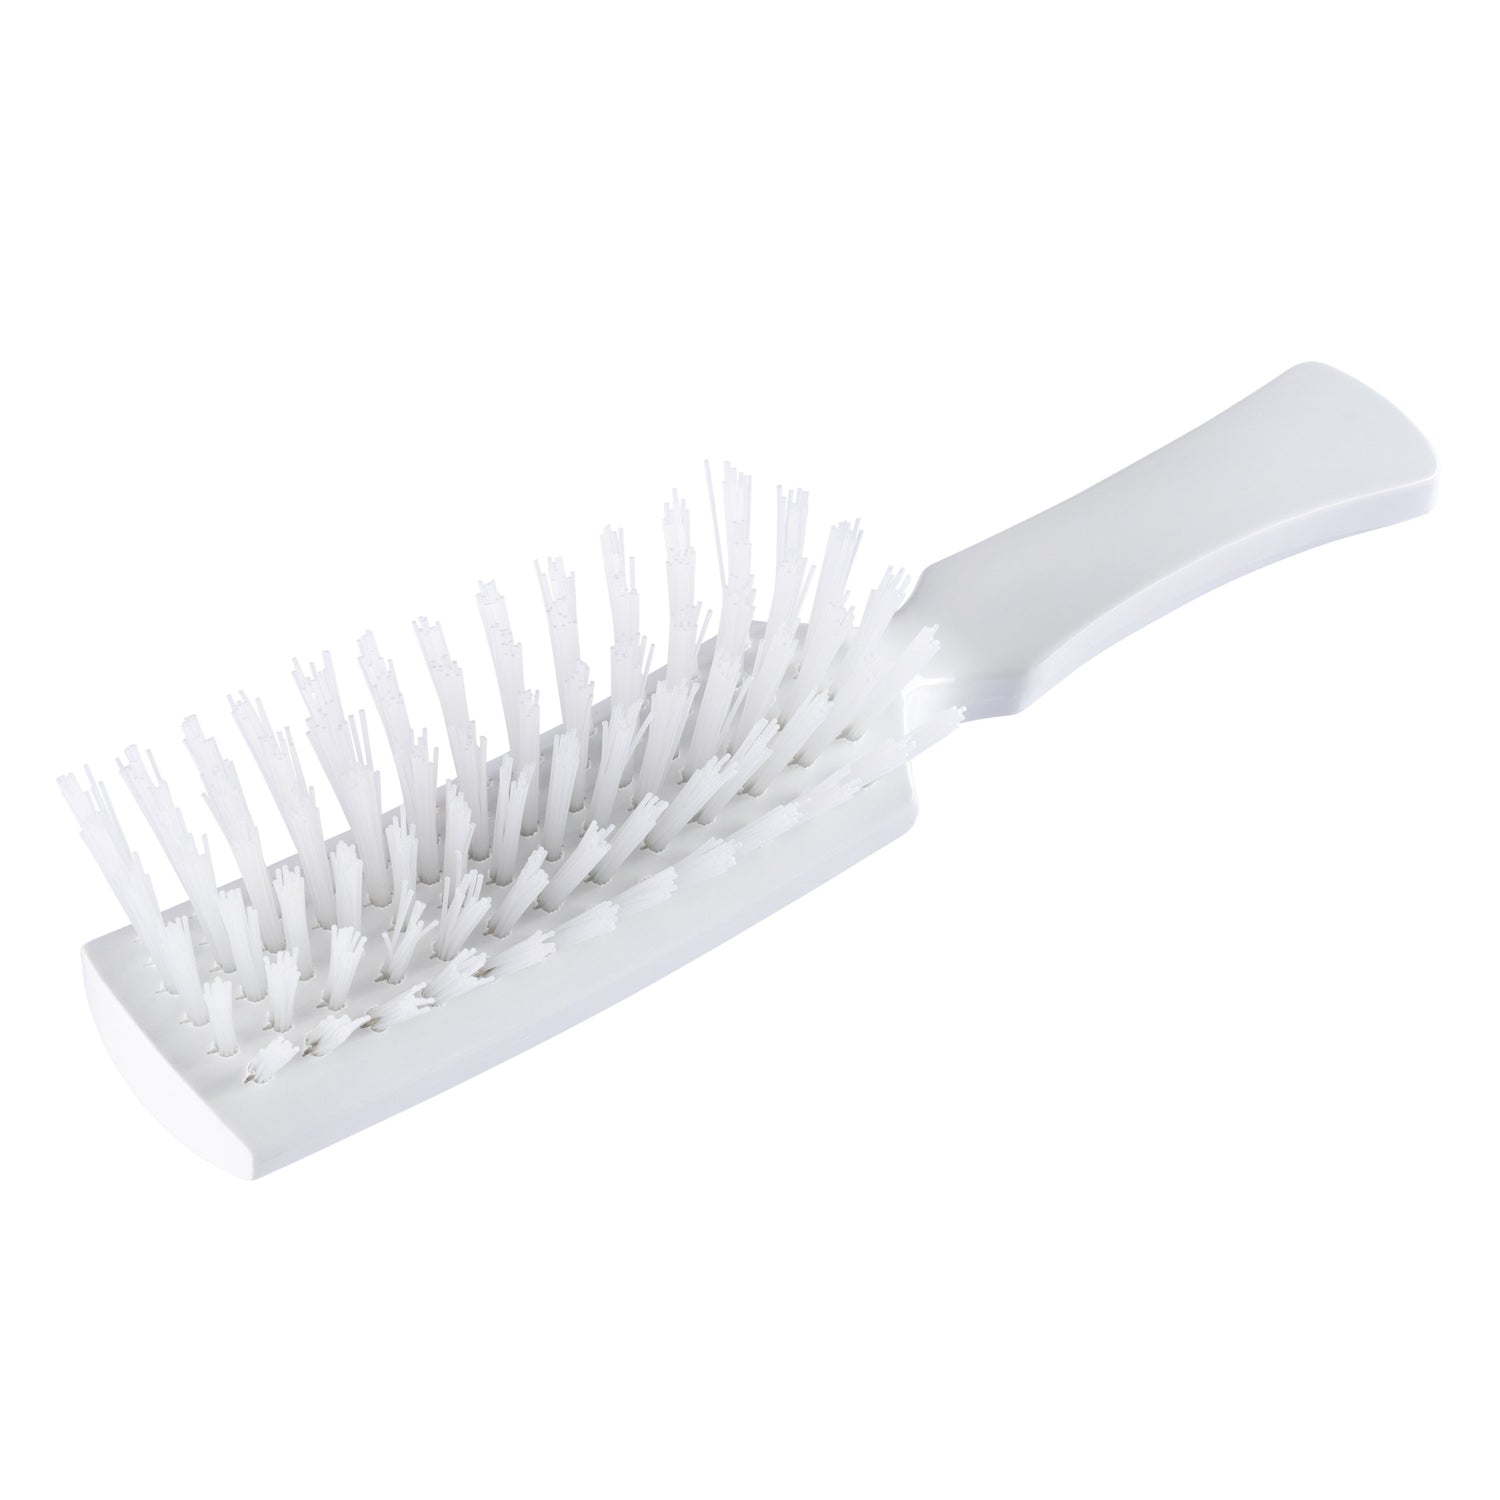 Nylon Professional Hairbrush for fine, thin, damaged & short hair-Hair Brushes-Fuller Brush Company